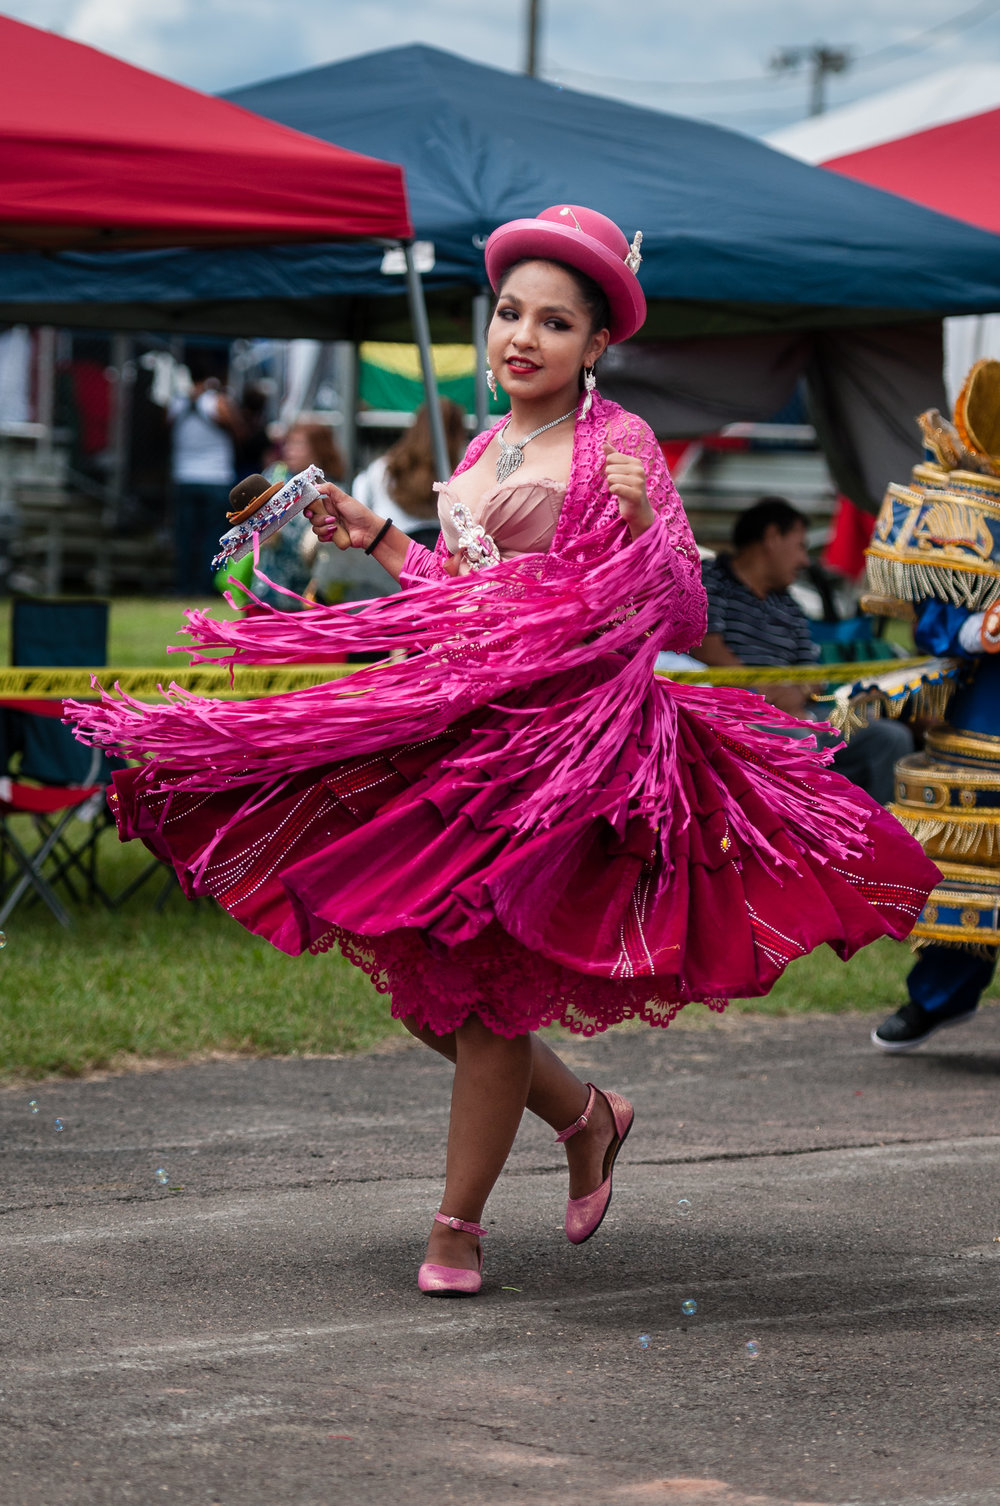 Embajadores del Folklore included a lot of color, such as this performer during a Morenada dance.